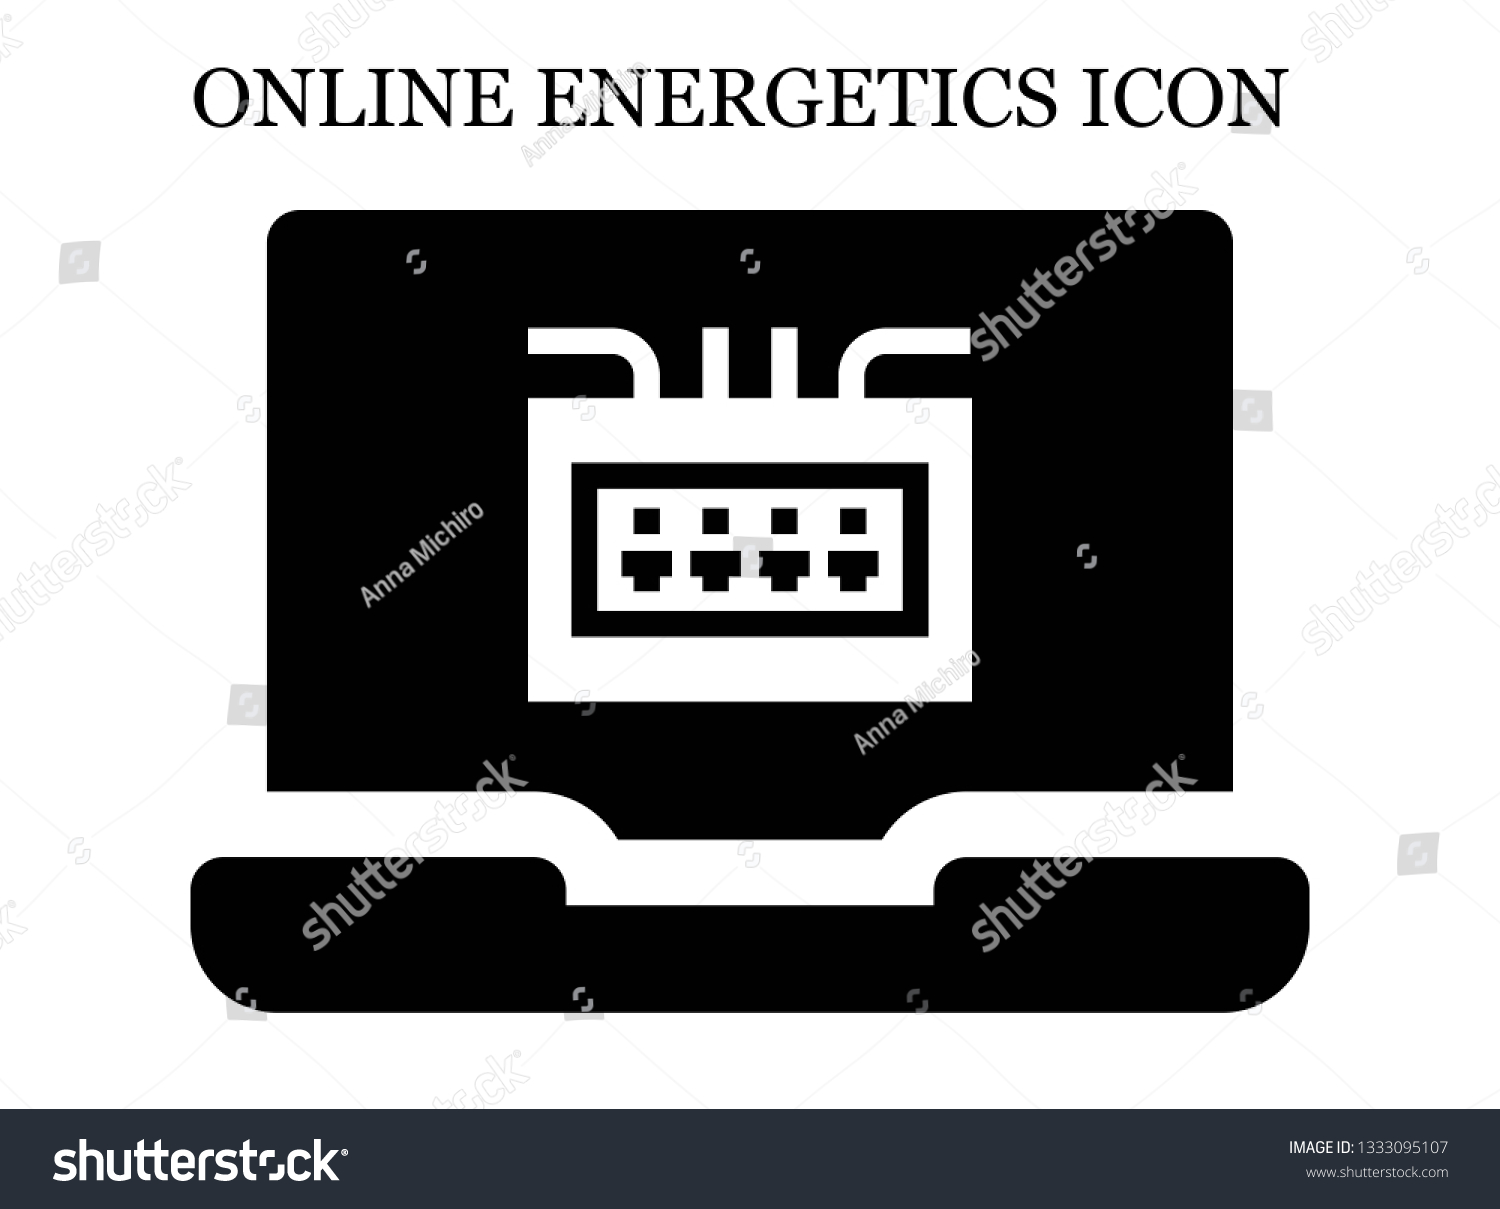 hight resolution of online fuse box icon editable online fuse box icon for web or mobile